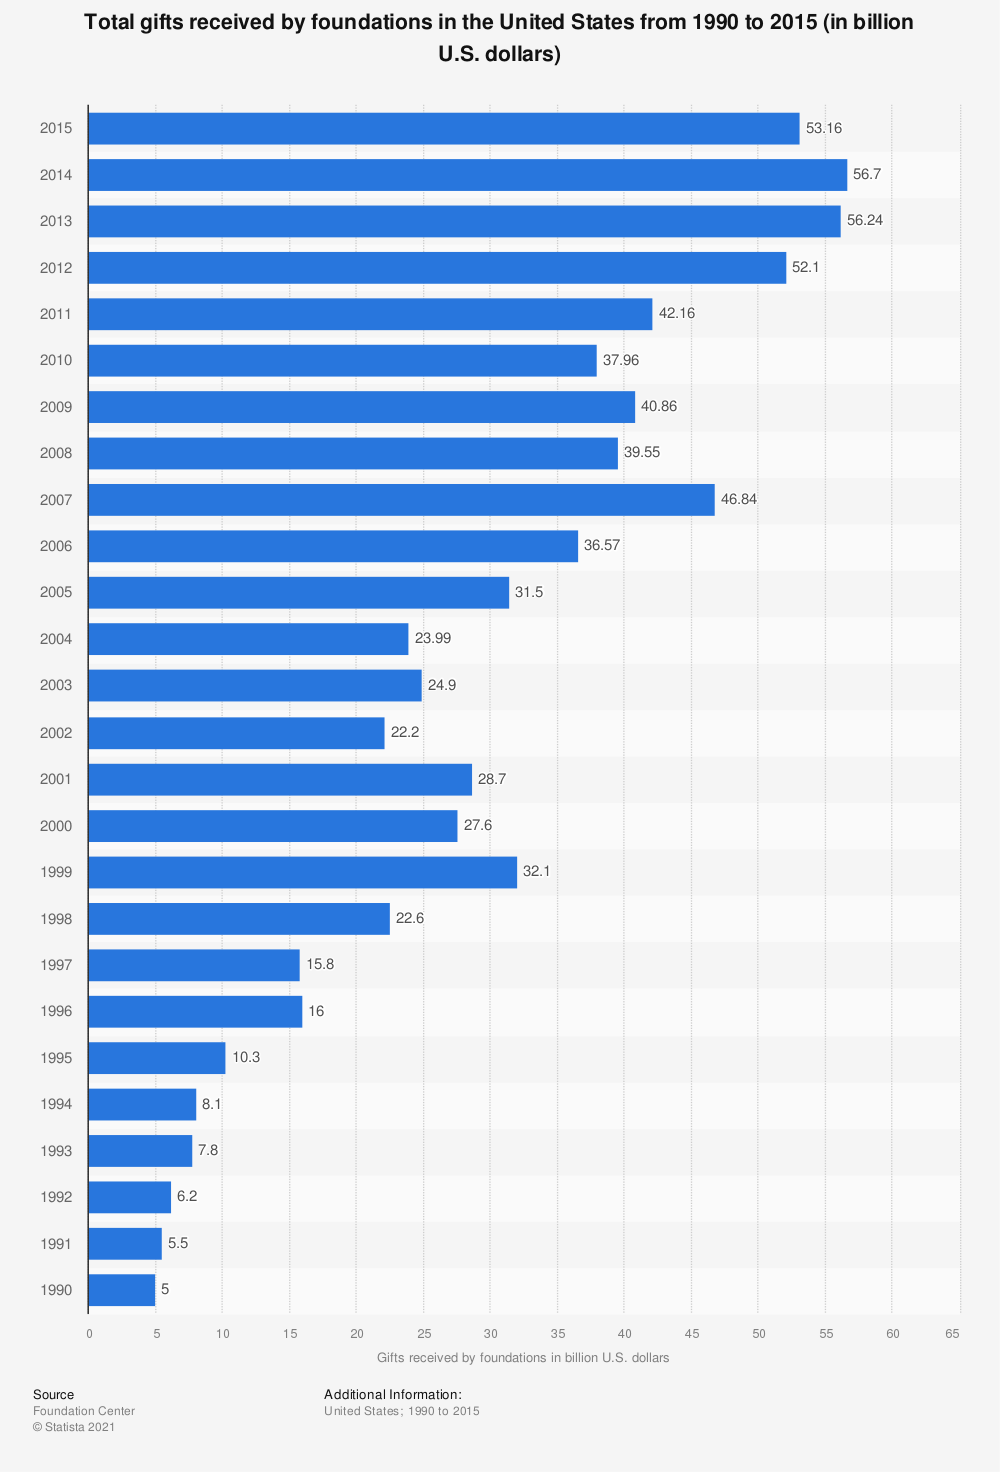 Statistic: Total gifts received by foundations in the United States from 1990 to 2015 (in billion U.S. dollars) | Statista